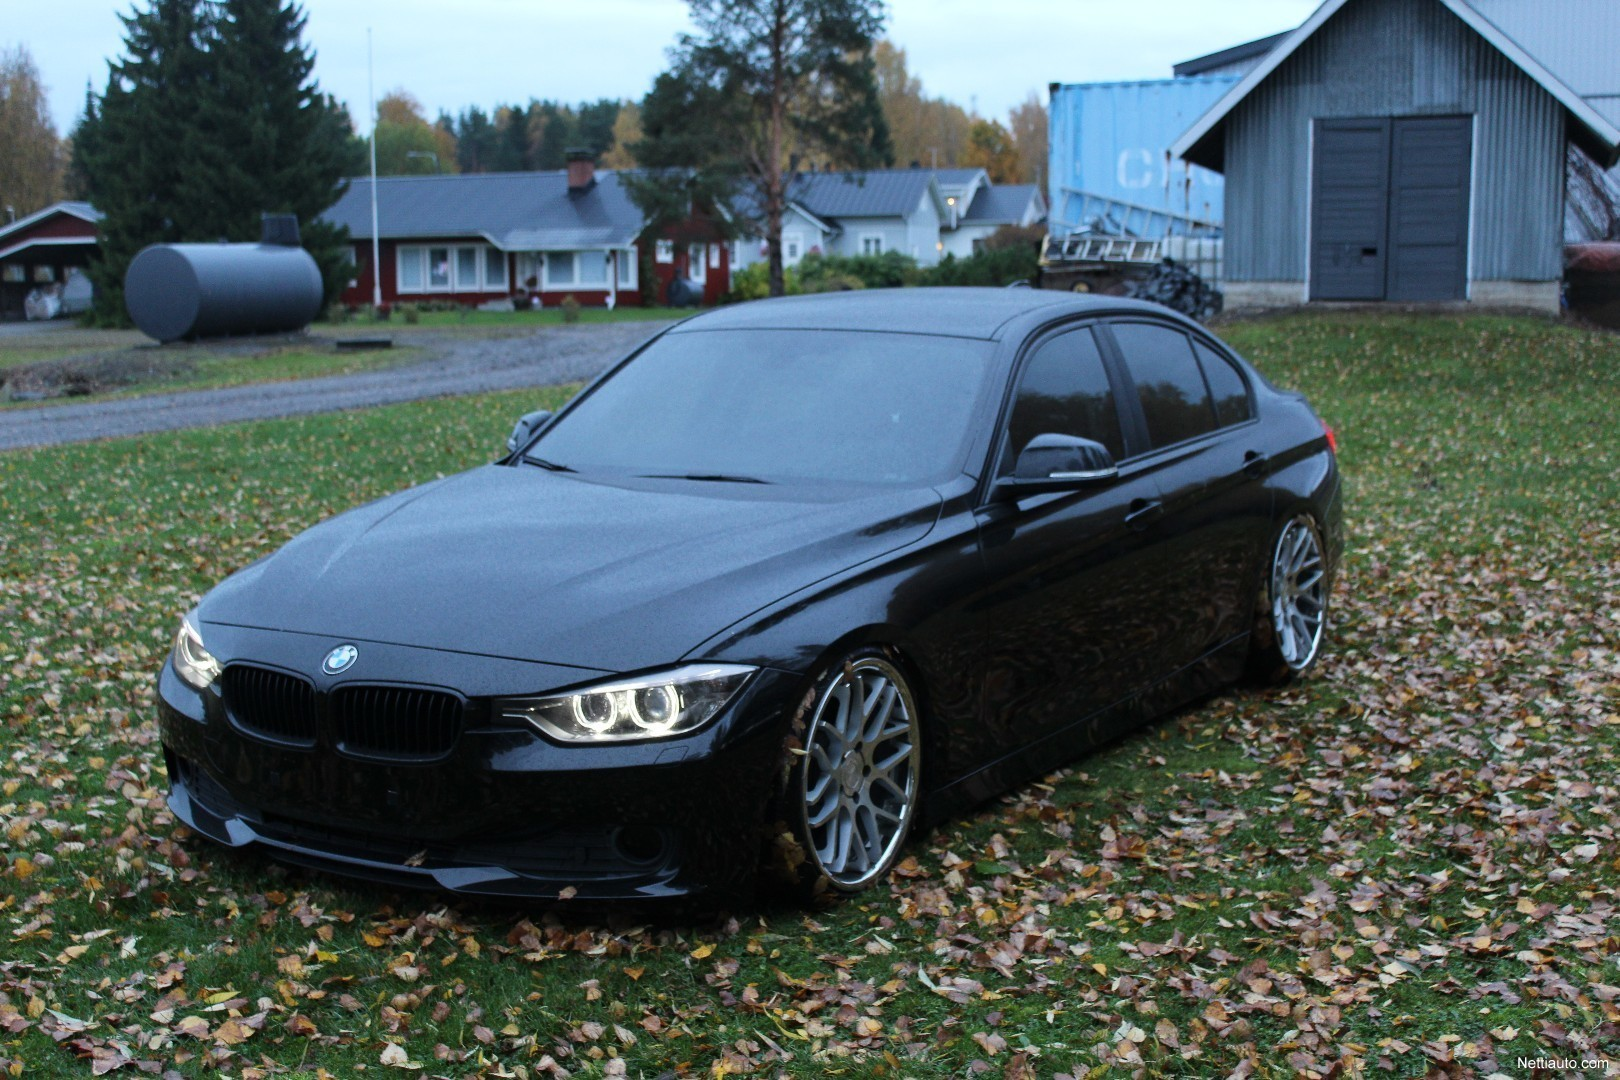 bmw 318 d a twinpwr tbo f30 sedan busin auto sedan 2013 used vehicle nettiauto. Black Bedroom Furniture Sets. Home Design Ideas